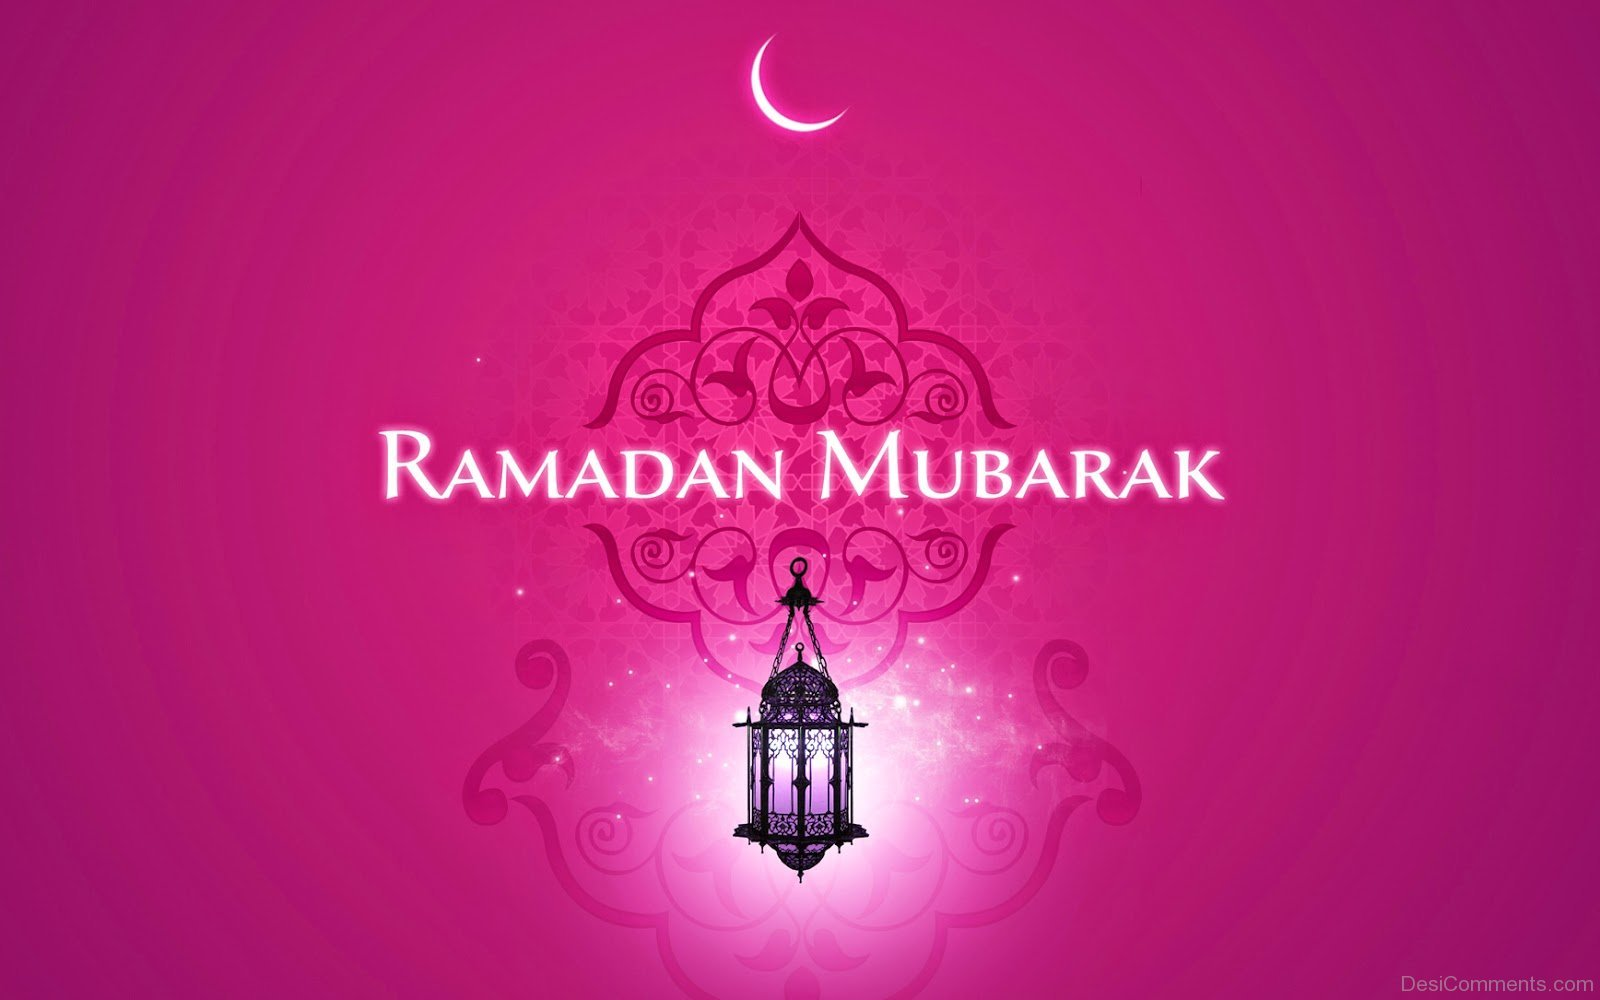 Hd wallpaper ramzan mubarak - Eid Mubarak 2016 Hd Wallpapers Images Cover